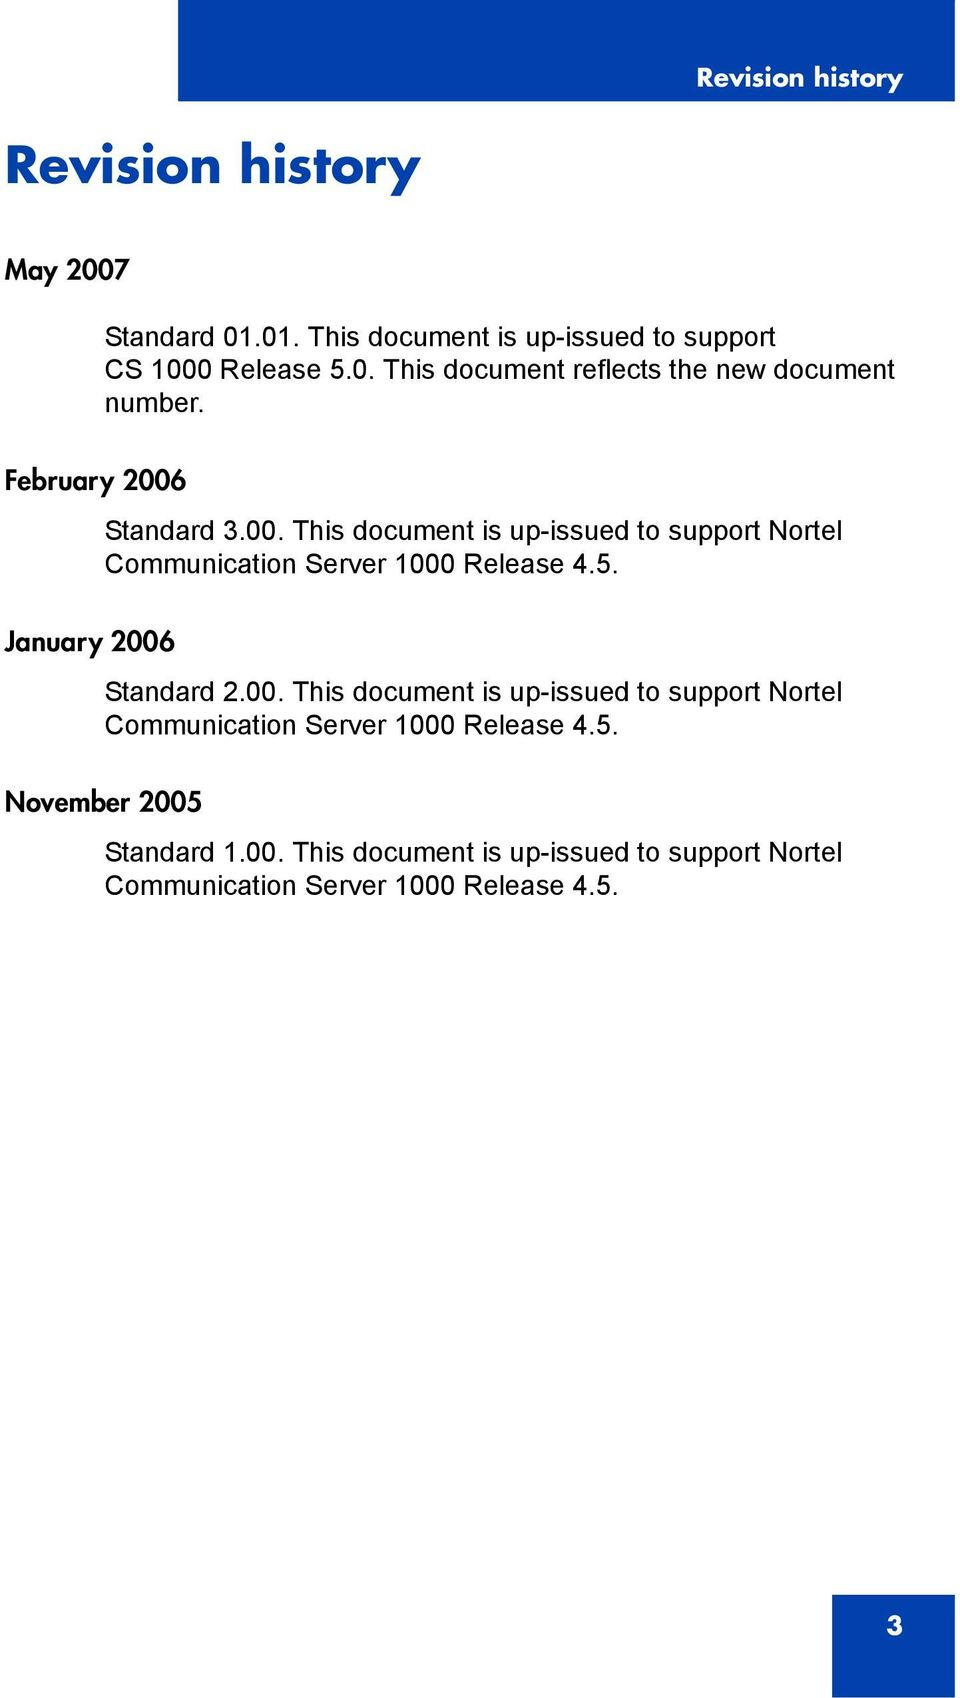 January 2006 Standard 2.00. This document is up-issued to support Nortel Communication Server 1000 Release 4.5.